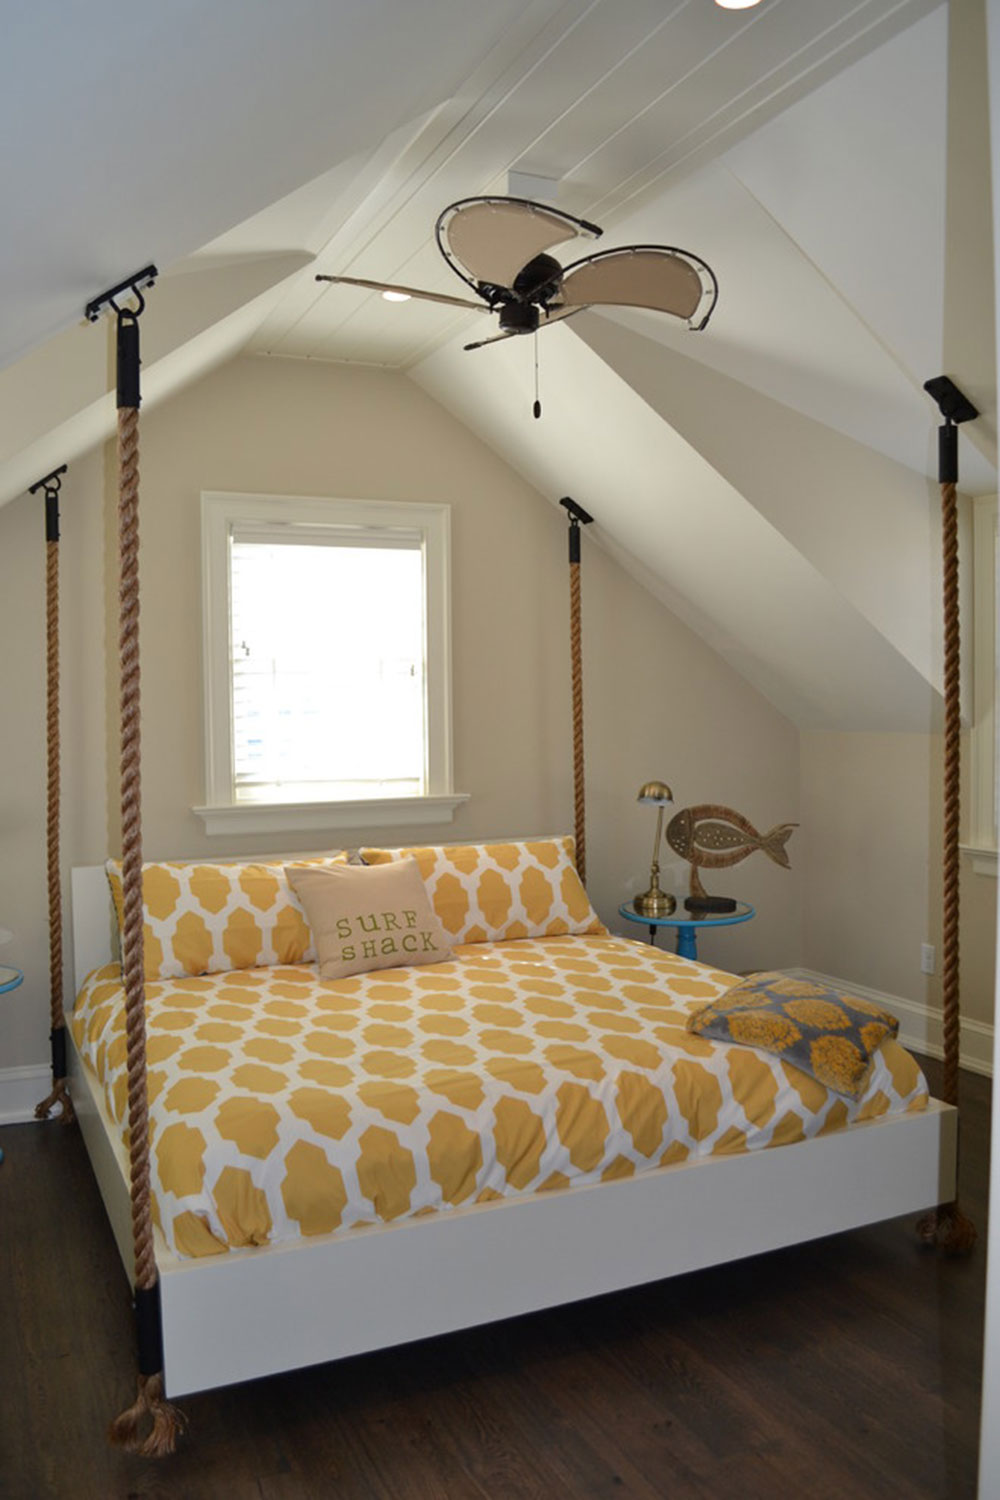 16 Creative Hanging Bed Ideas For Amazing Homes